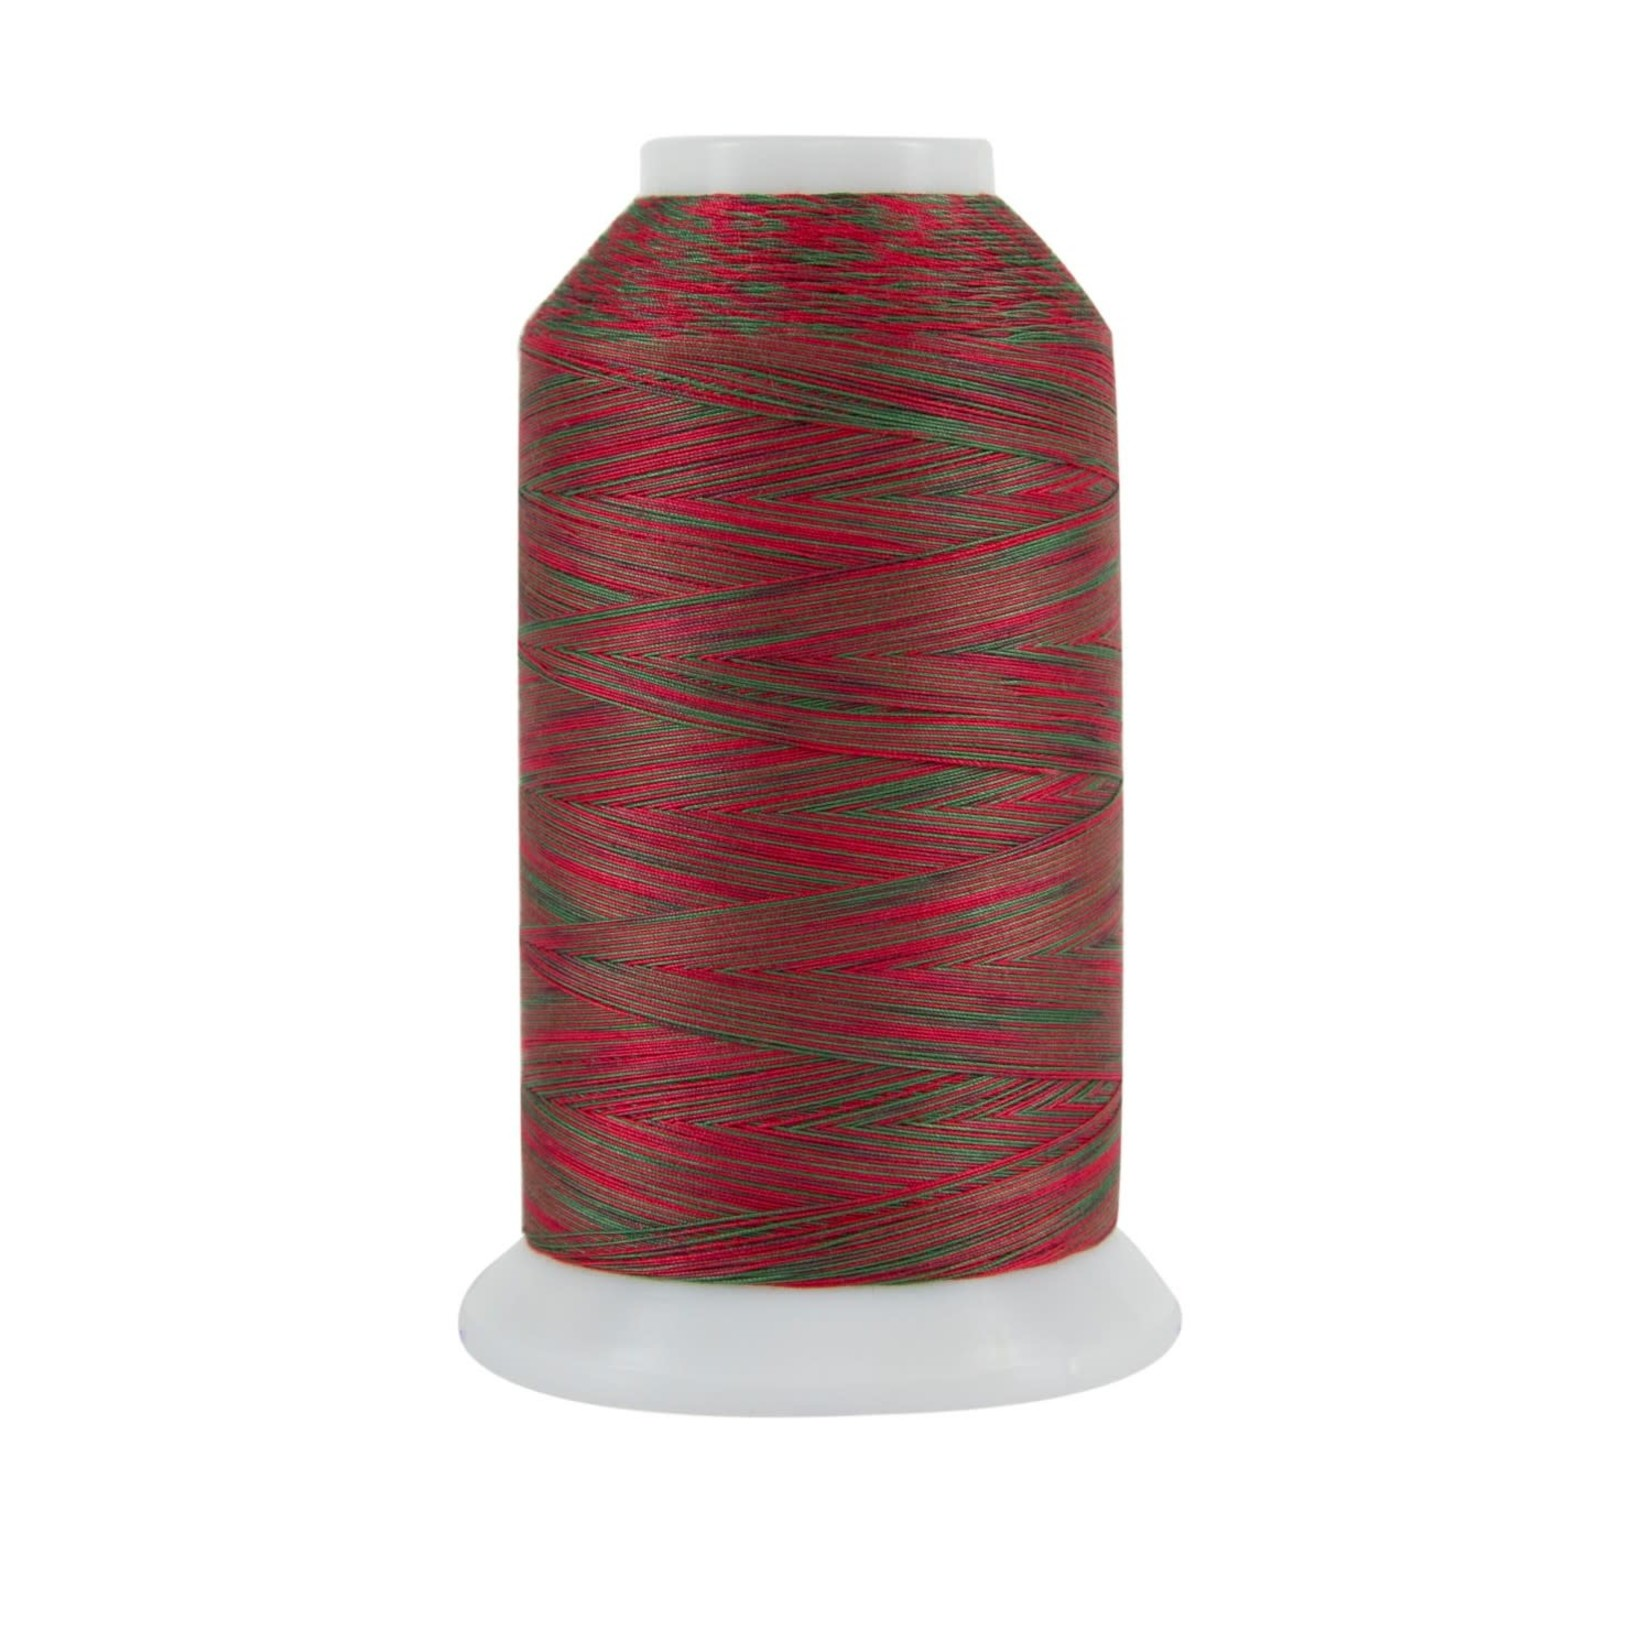 Superior Threads King Tut - #40 - 1828 m - 1002 Holly and Ivy